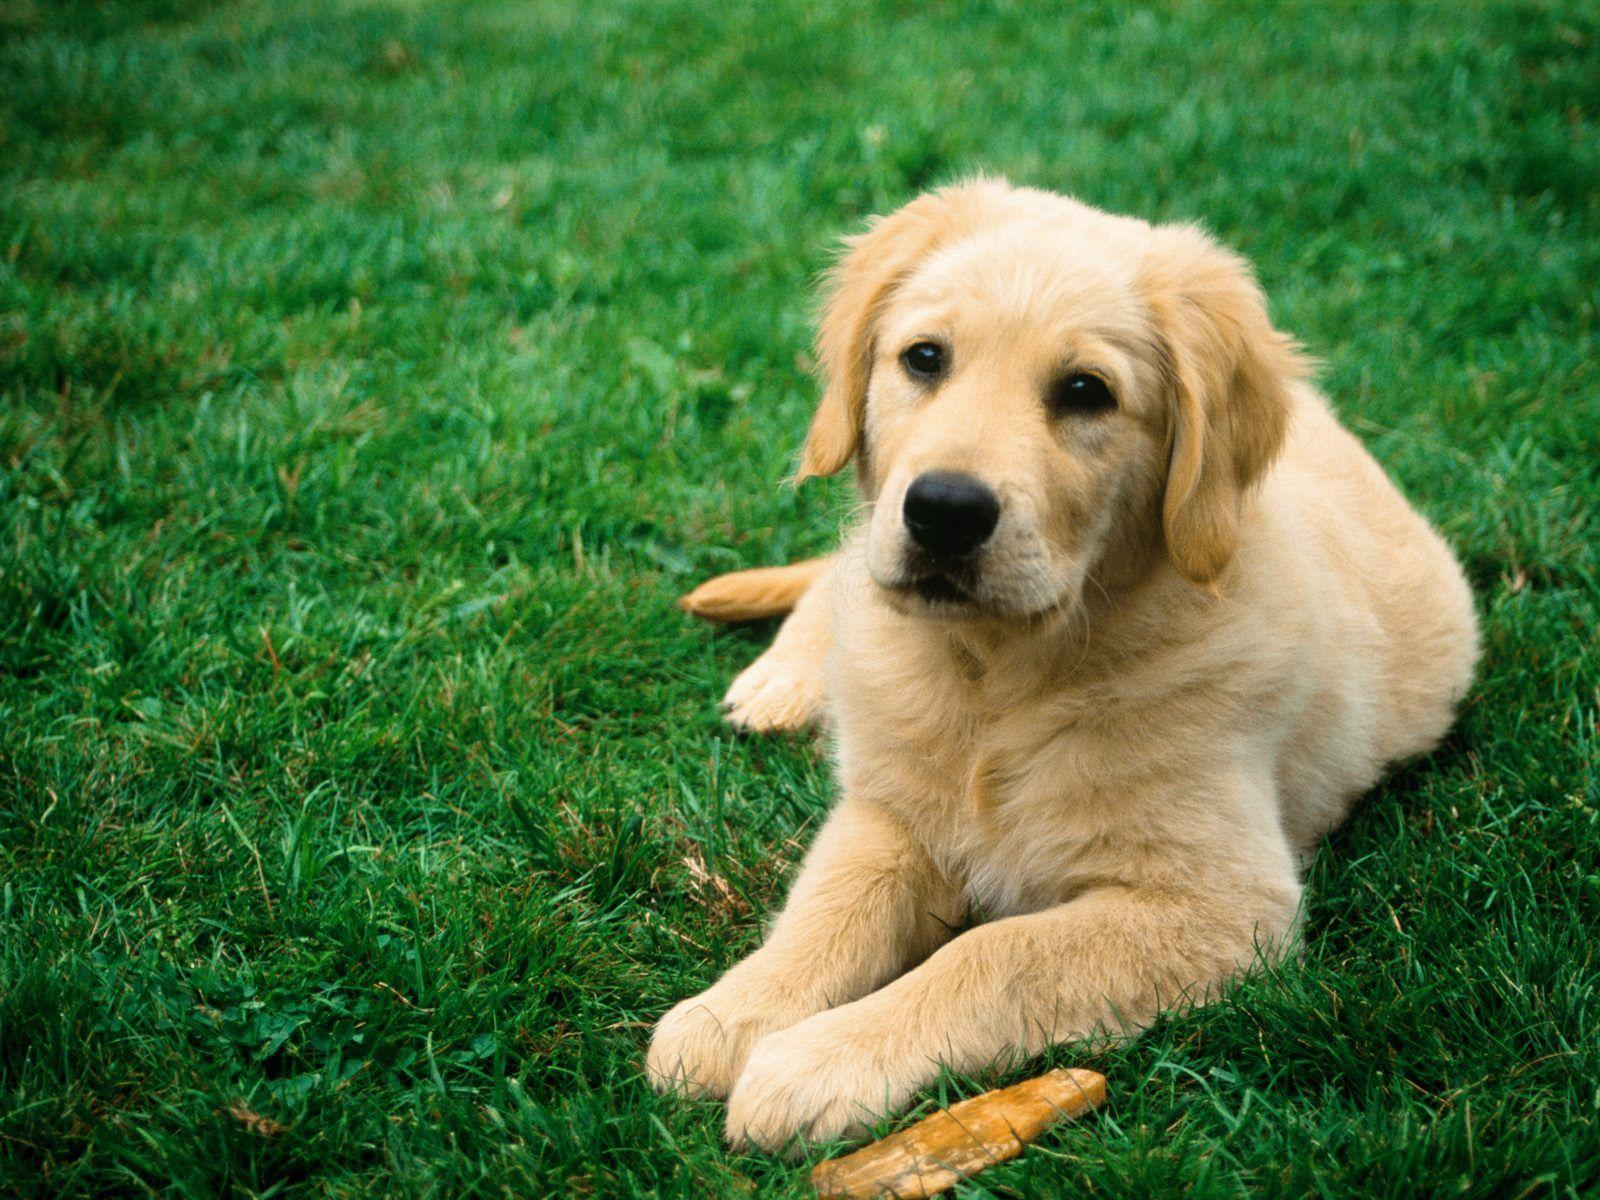 Dog Animal Wallpapers